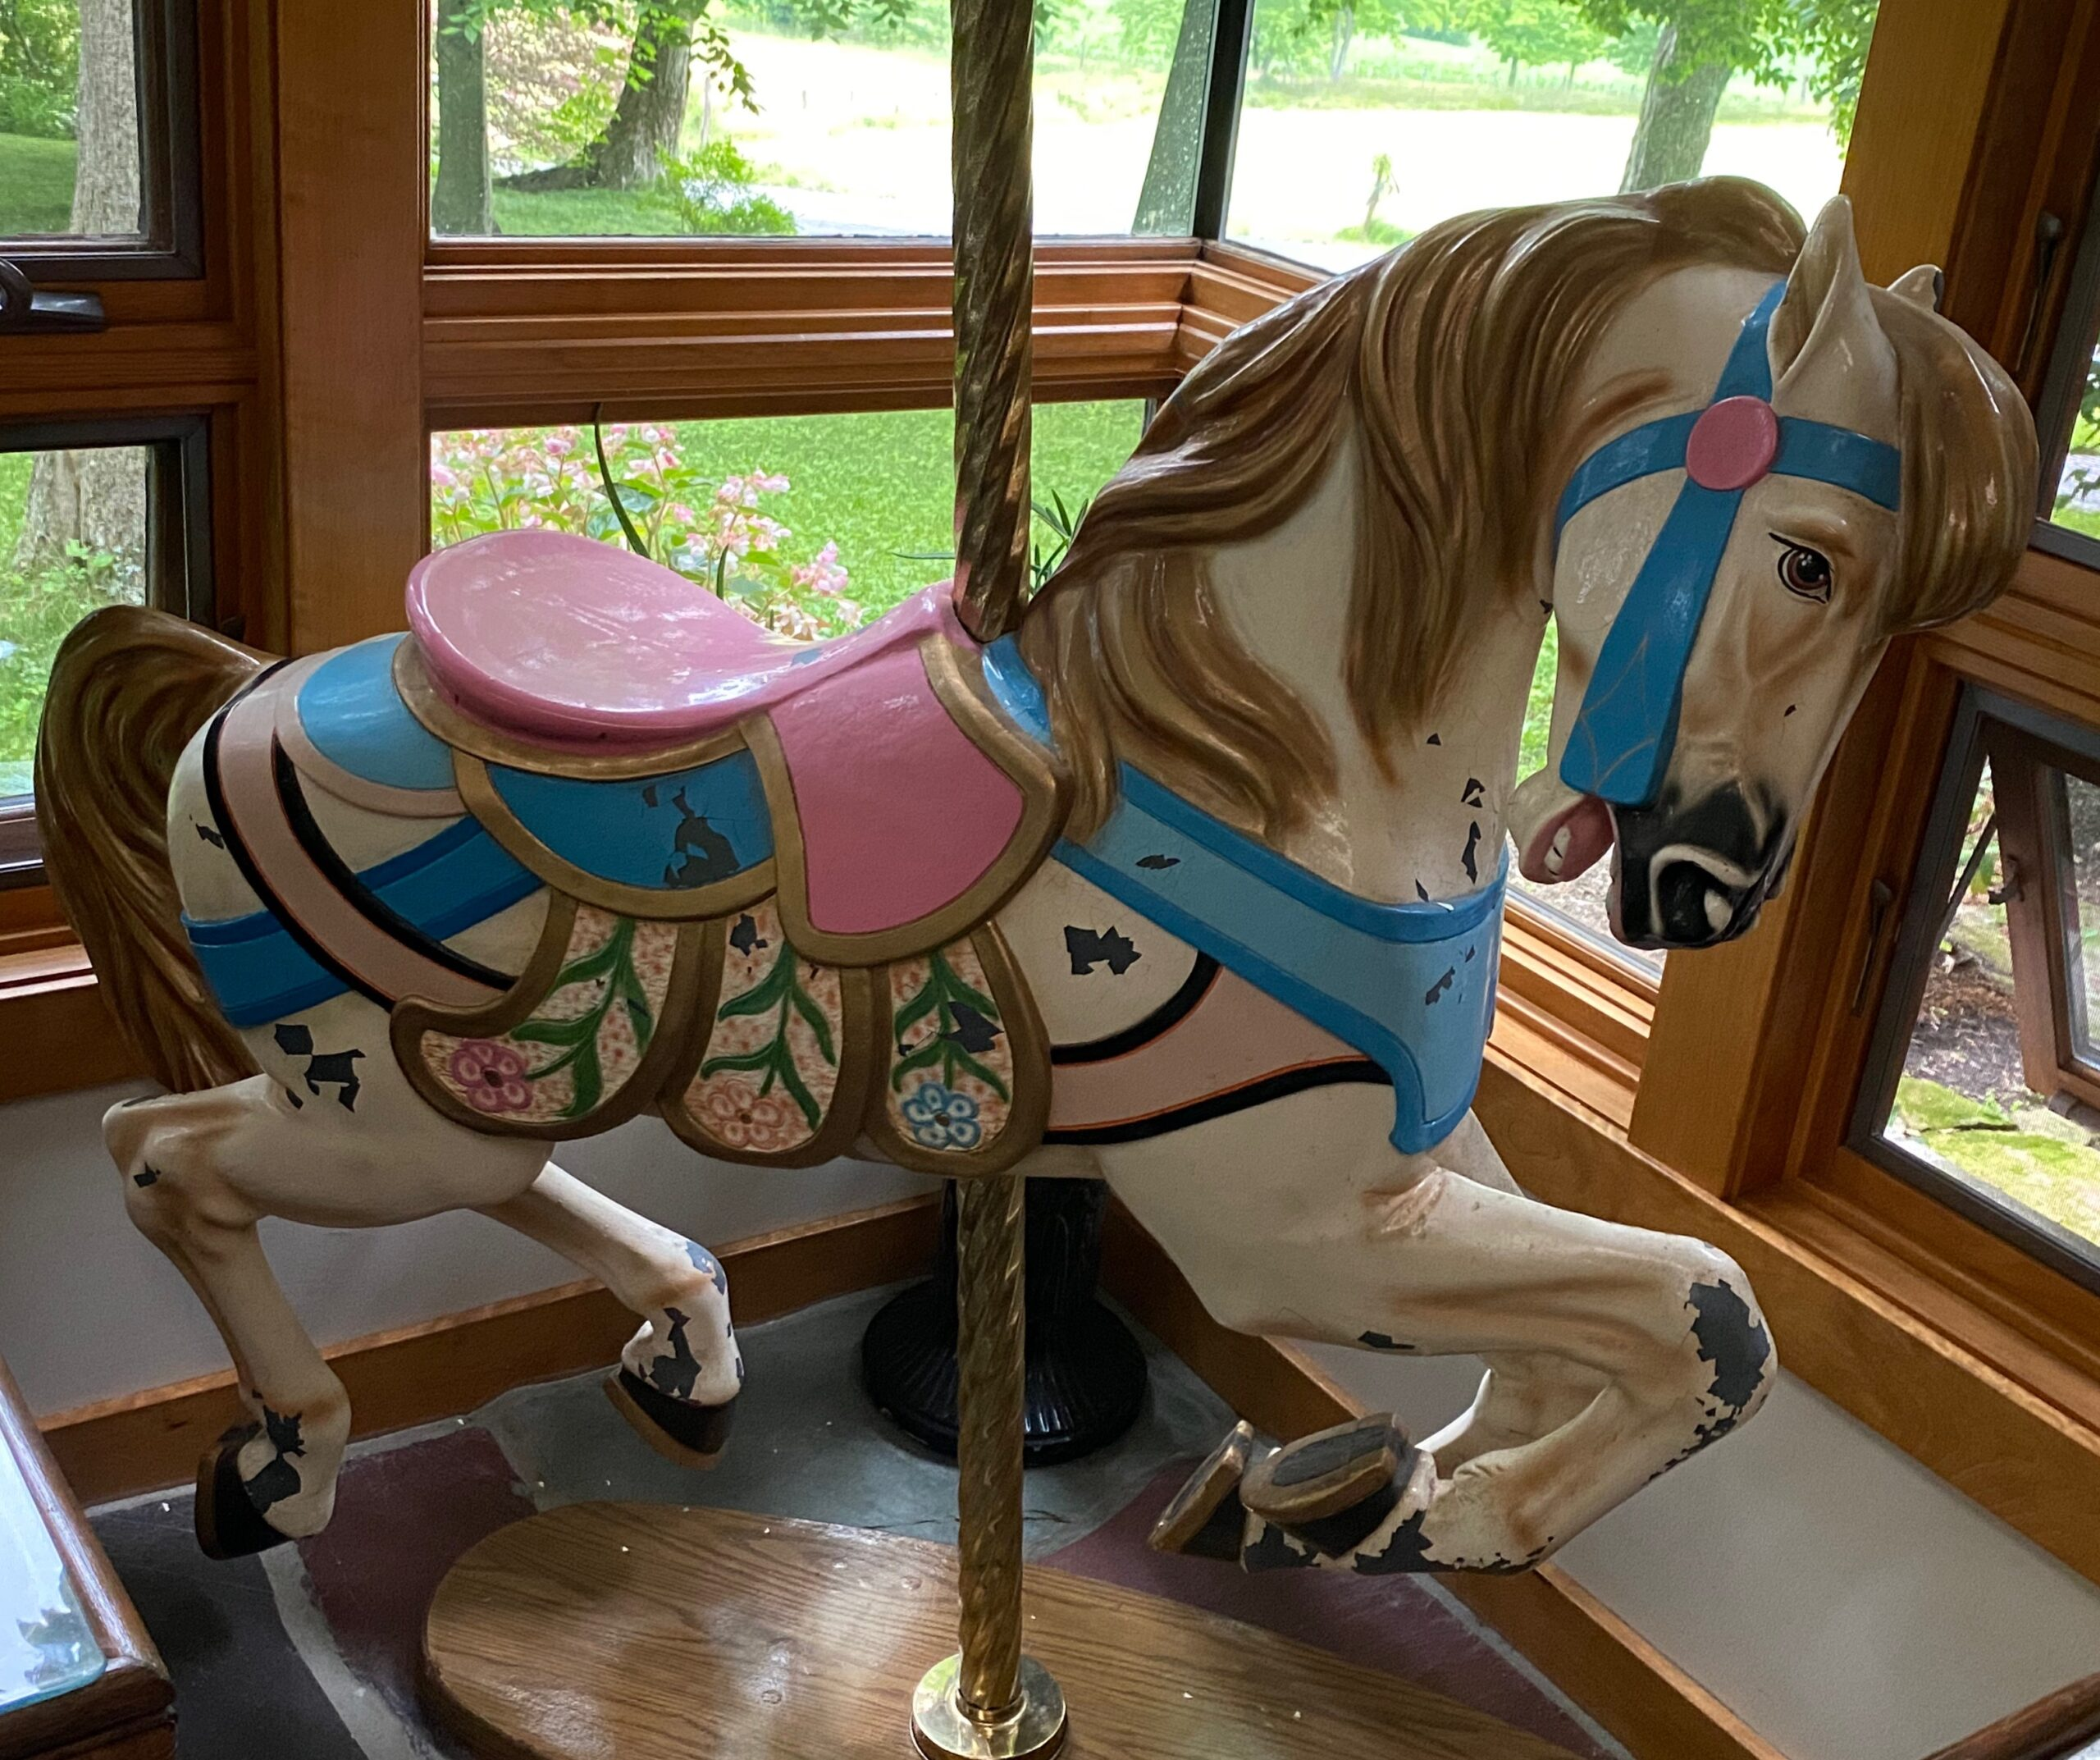 Full Sized Carousel Horse from Kater's Acres